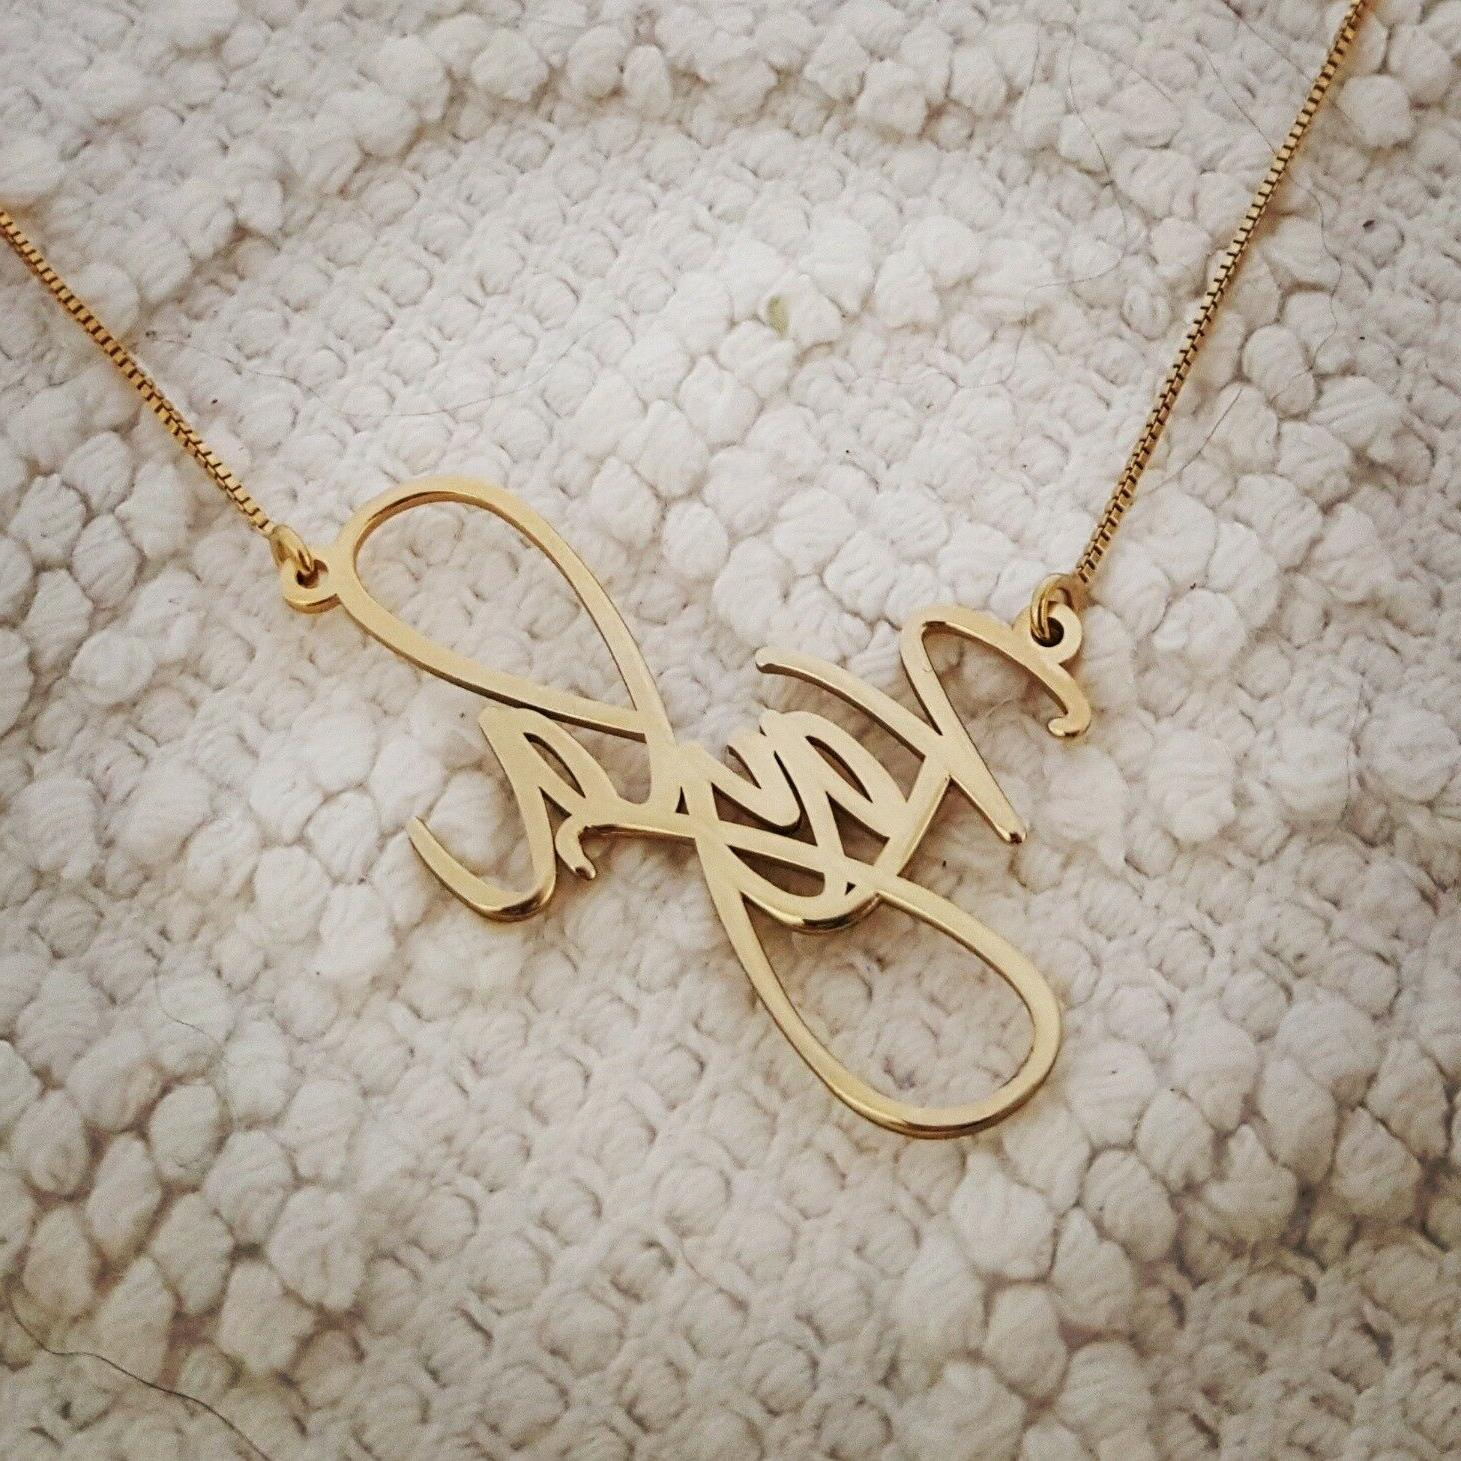 14k Solid Yellow Gold Personalized Name Necklace, Kayla neck